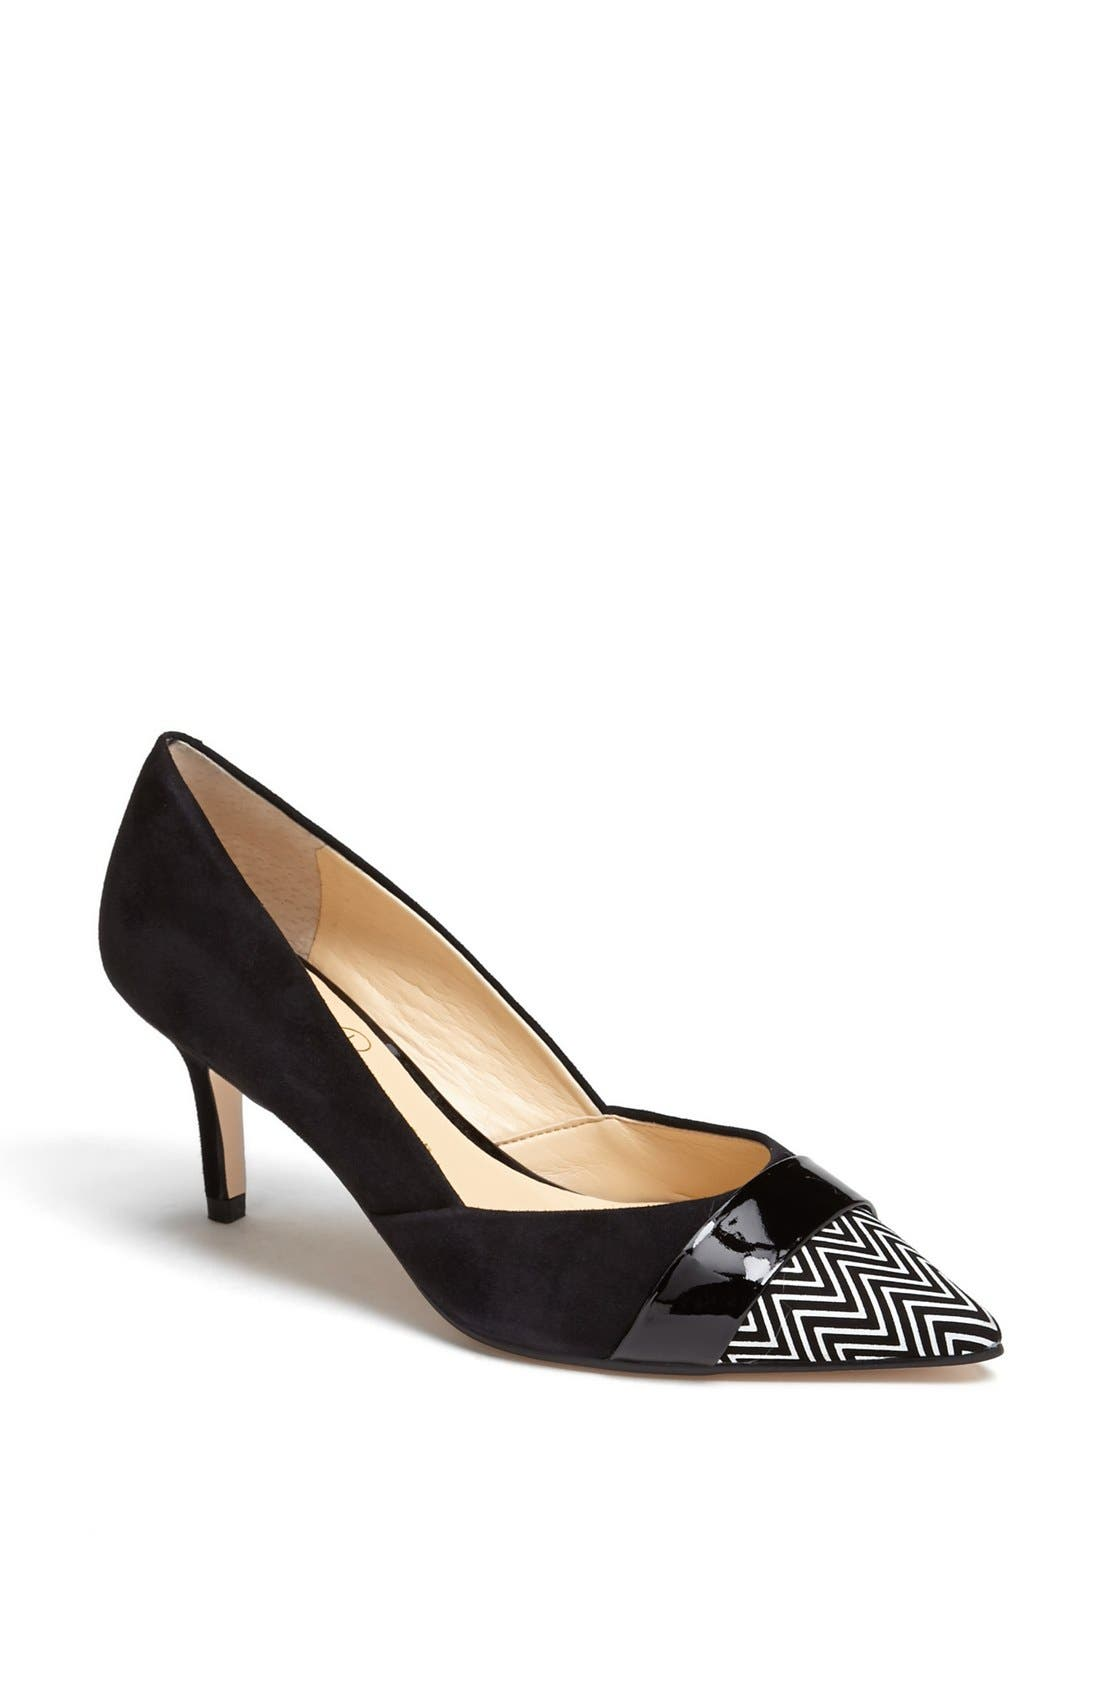 Alternate Image 1 Selected - Ivanka Trump 'Nyle' Pump (Women)